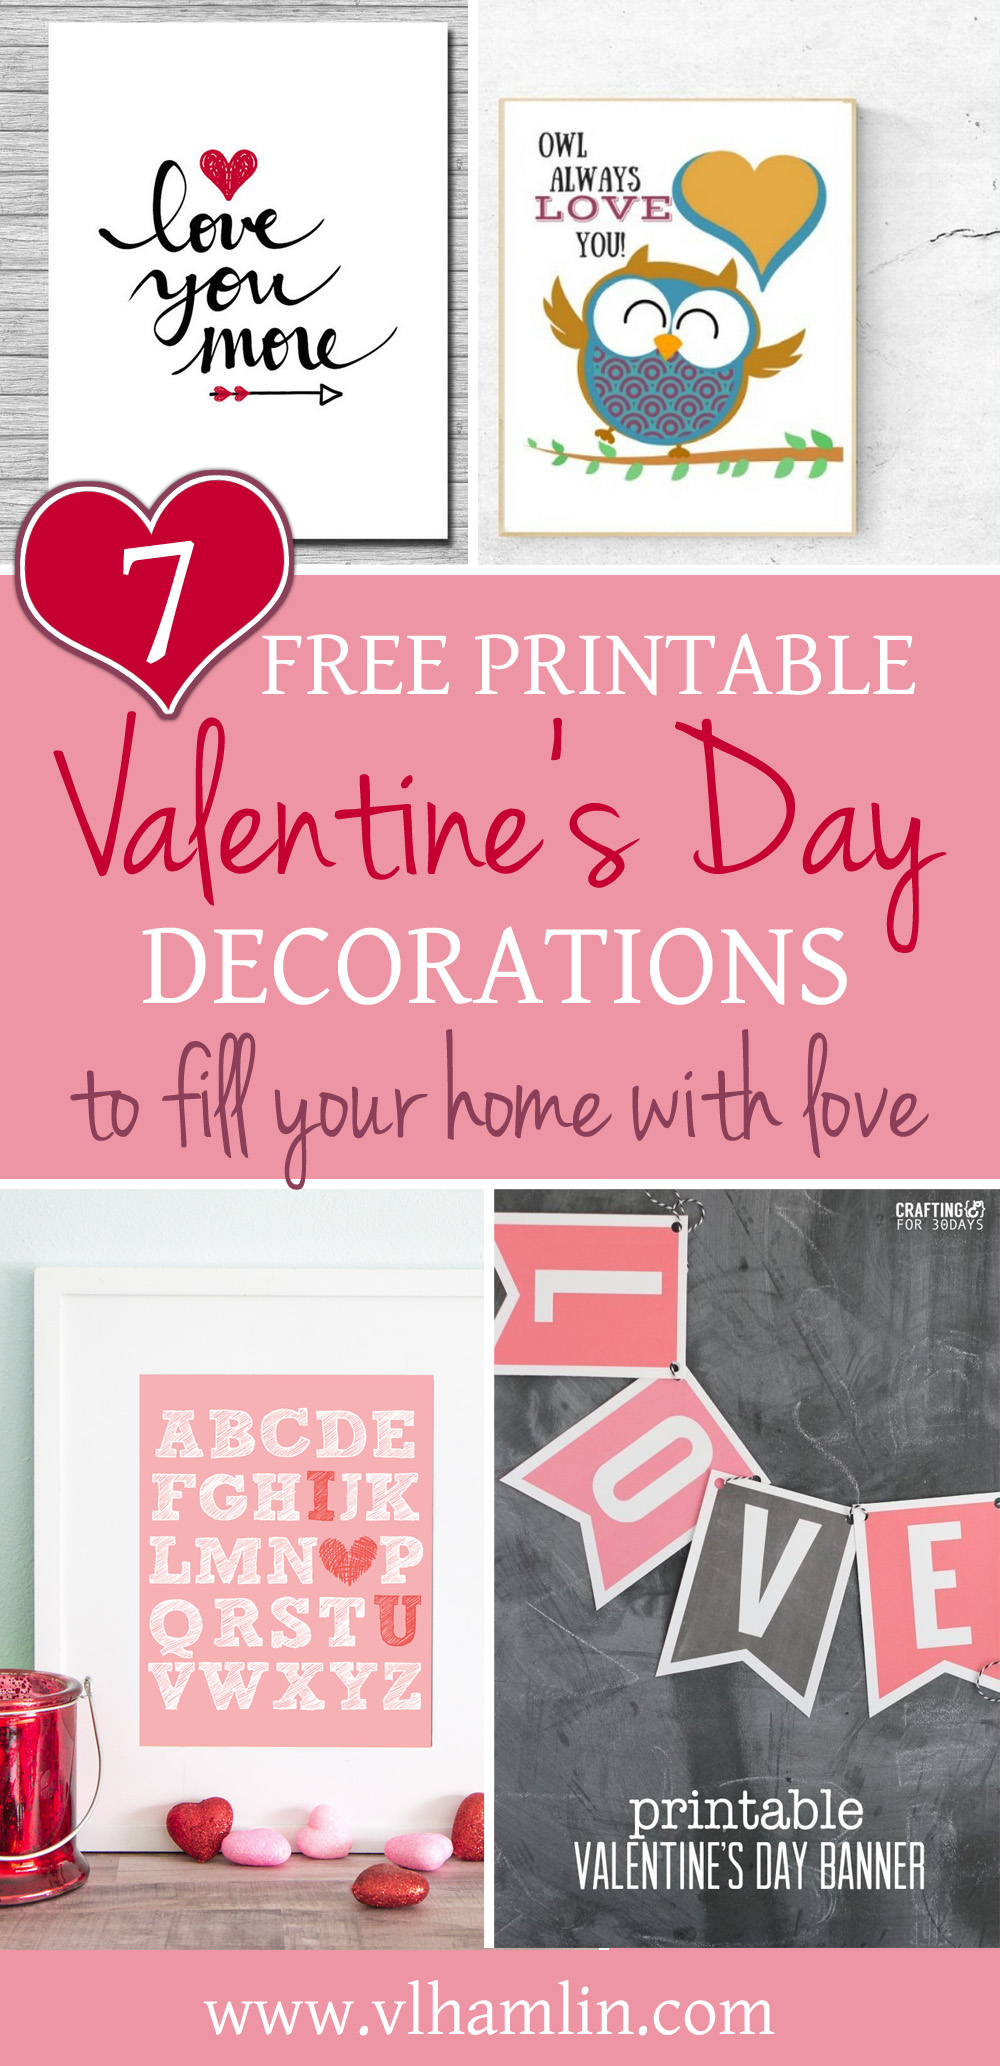 7 Free Printable Valentines Day Decorations To Fill Your Home With Love Food Life Design